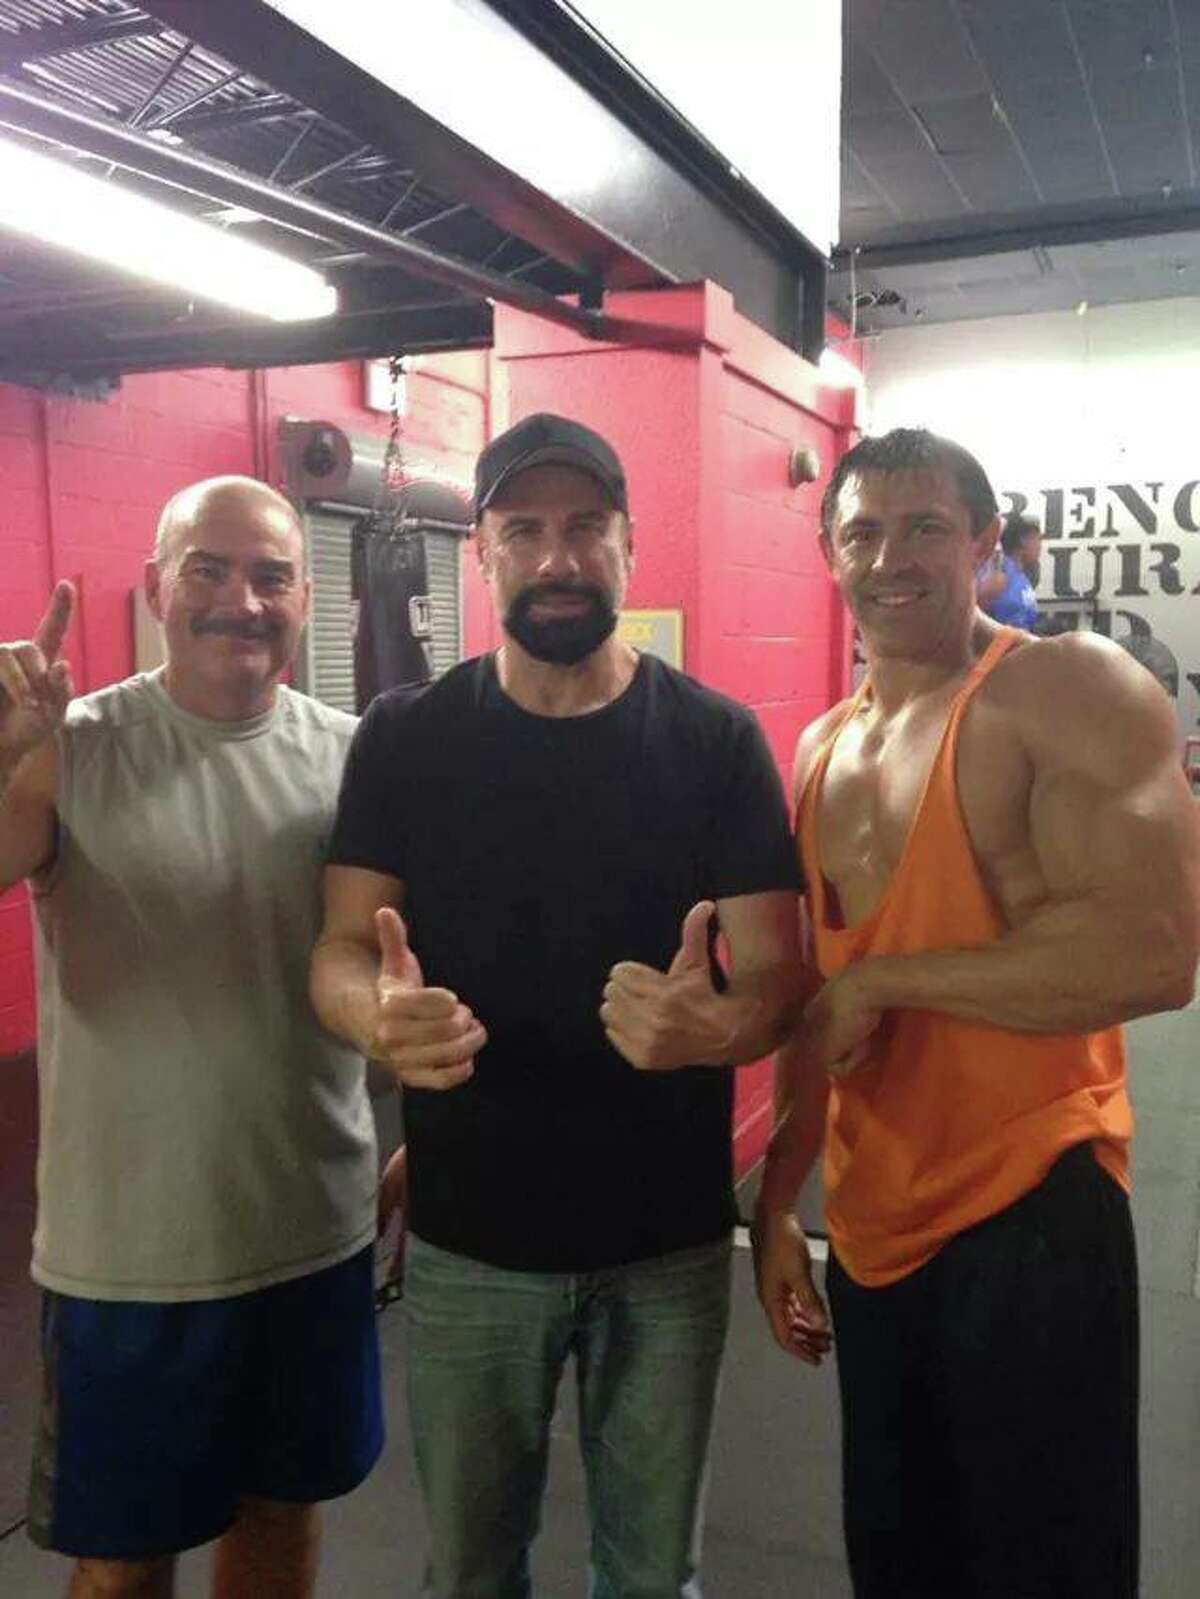 Actor John Travolta poses with fans at World Gym Fitness Center in Beaumont on Wednesday, September 24, 2014.